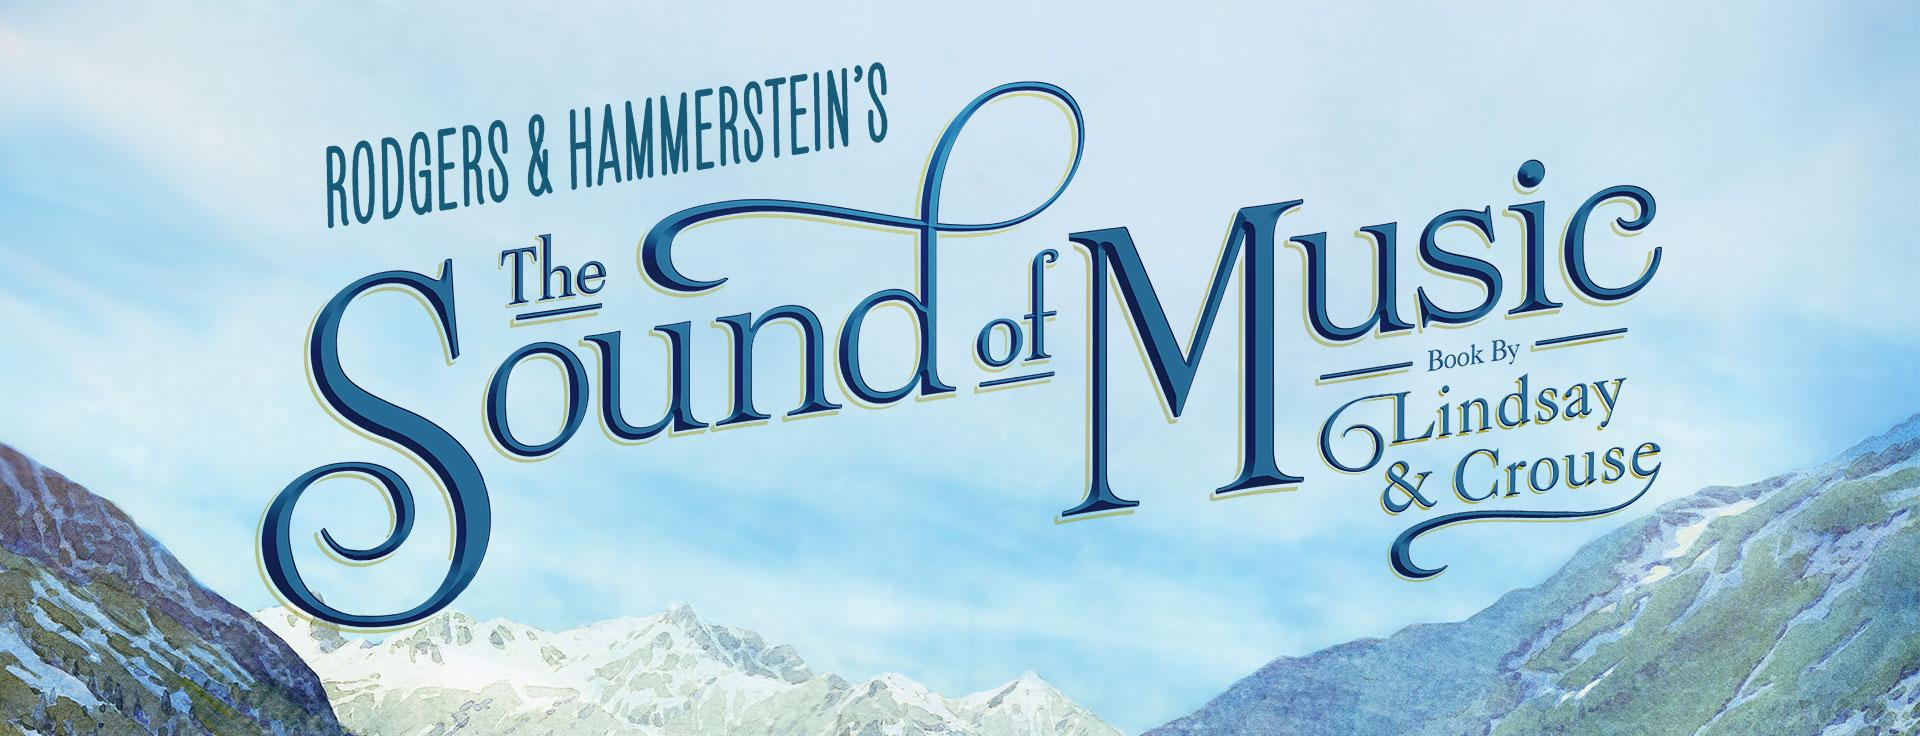 The Sound of Music Slide